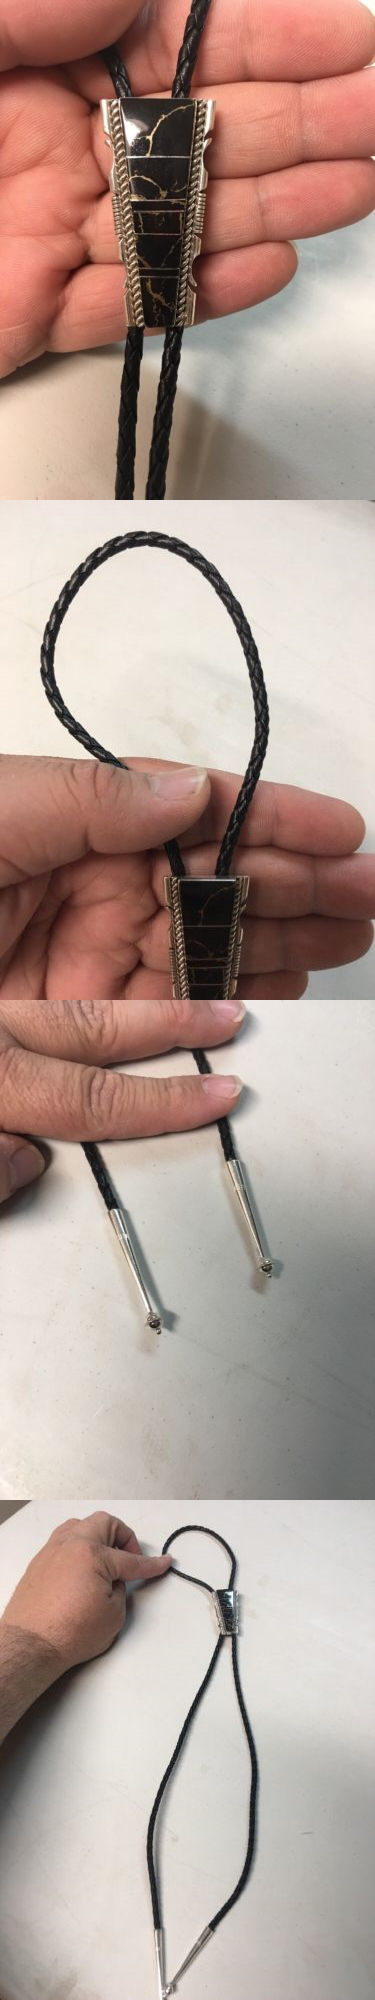 Bolo Ties 10292: Native American Indian Navajo Bolo Tie Black Onyx Pyrite Inlay Ties Stunning # 5 BUY IT NOW ONLY: $89.97